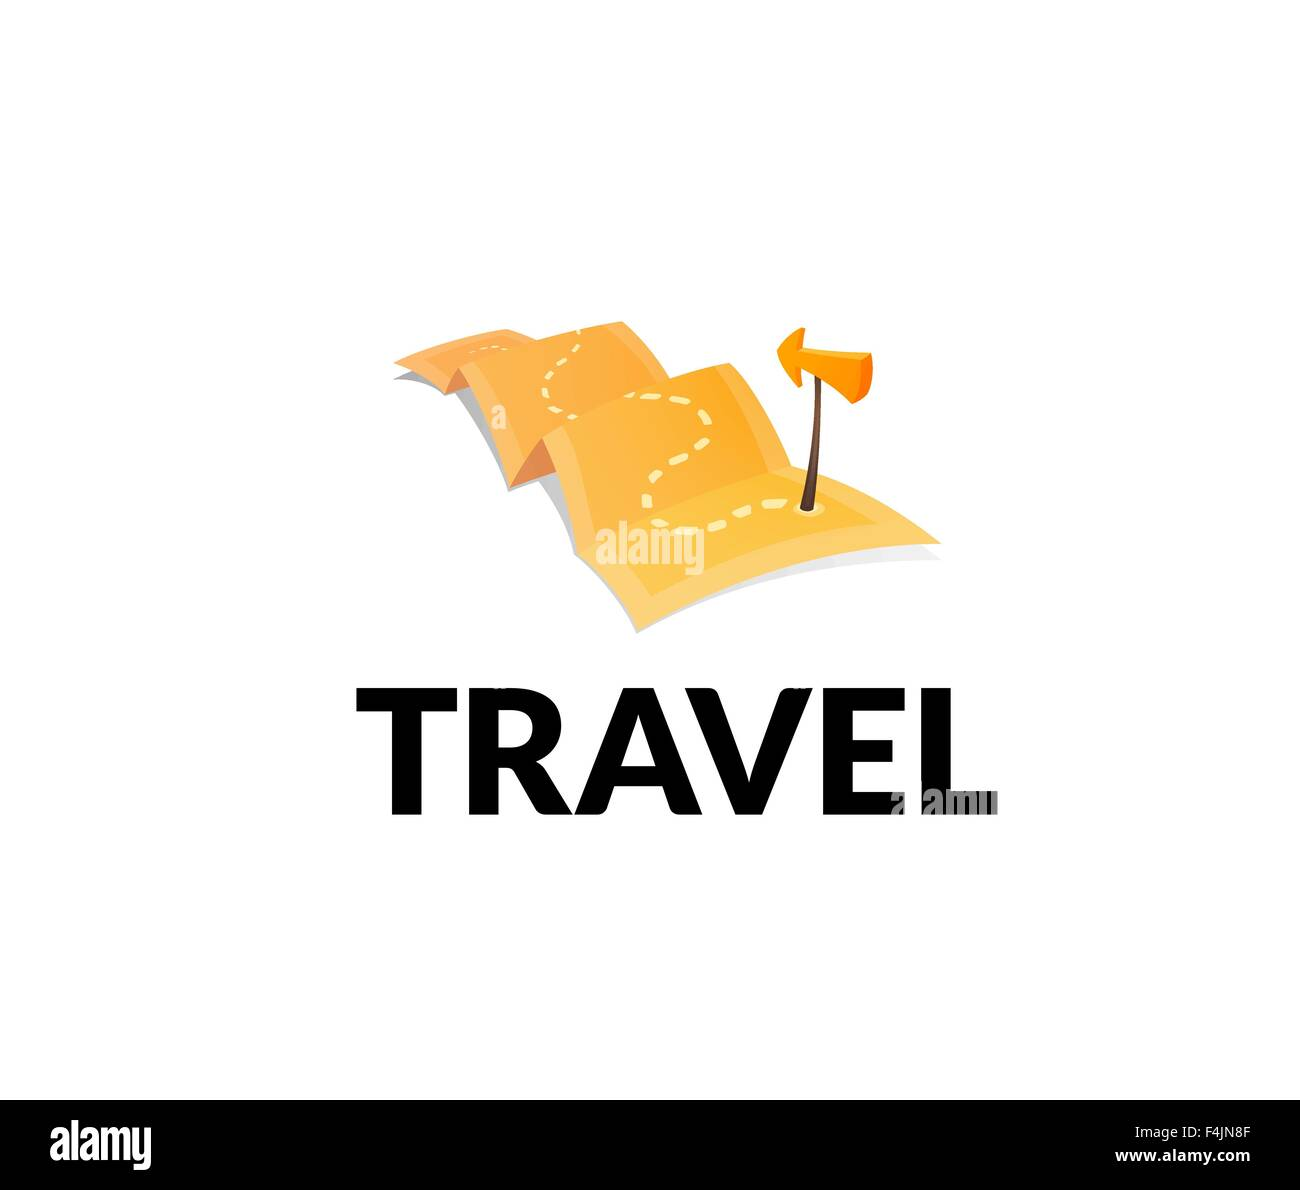 World Tour Concept Logo Isolated On White Background Long Route In Travel Map With Guide Marker